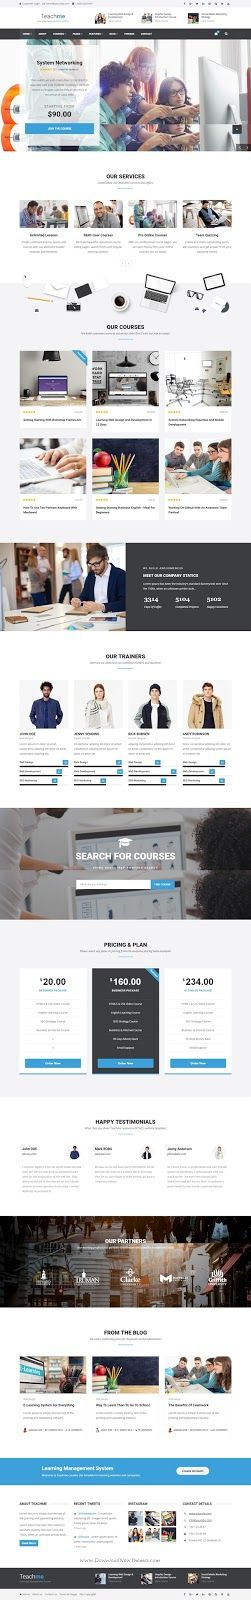 Best Responsive Learning Management System Site Template for ...